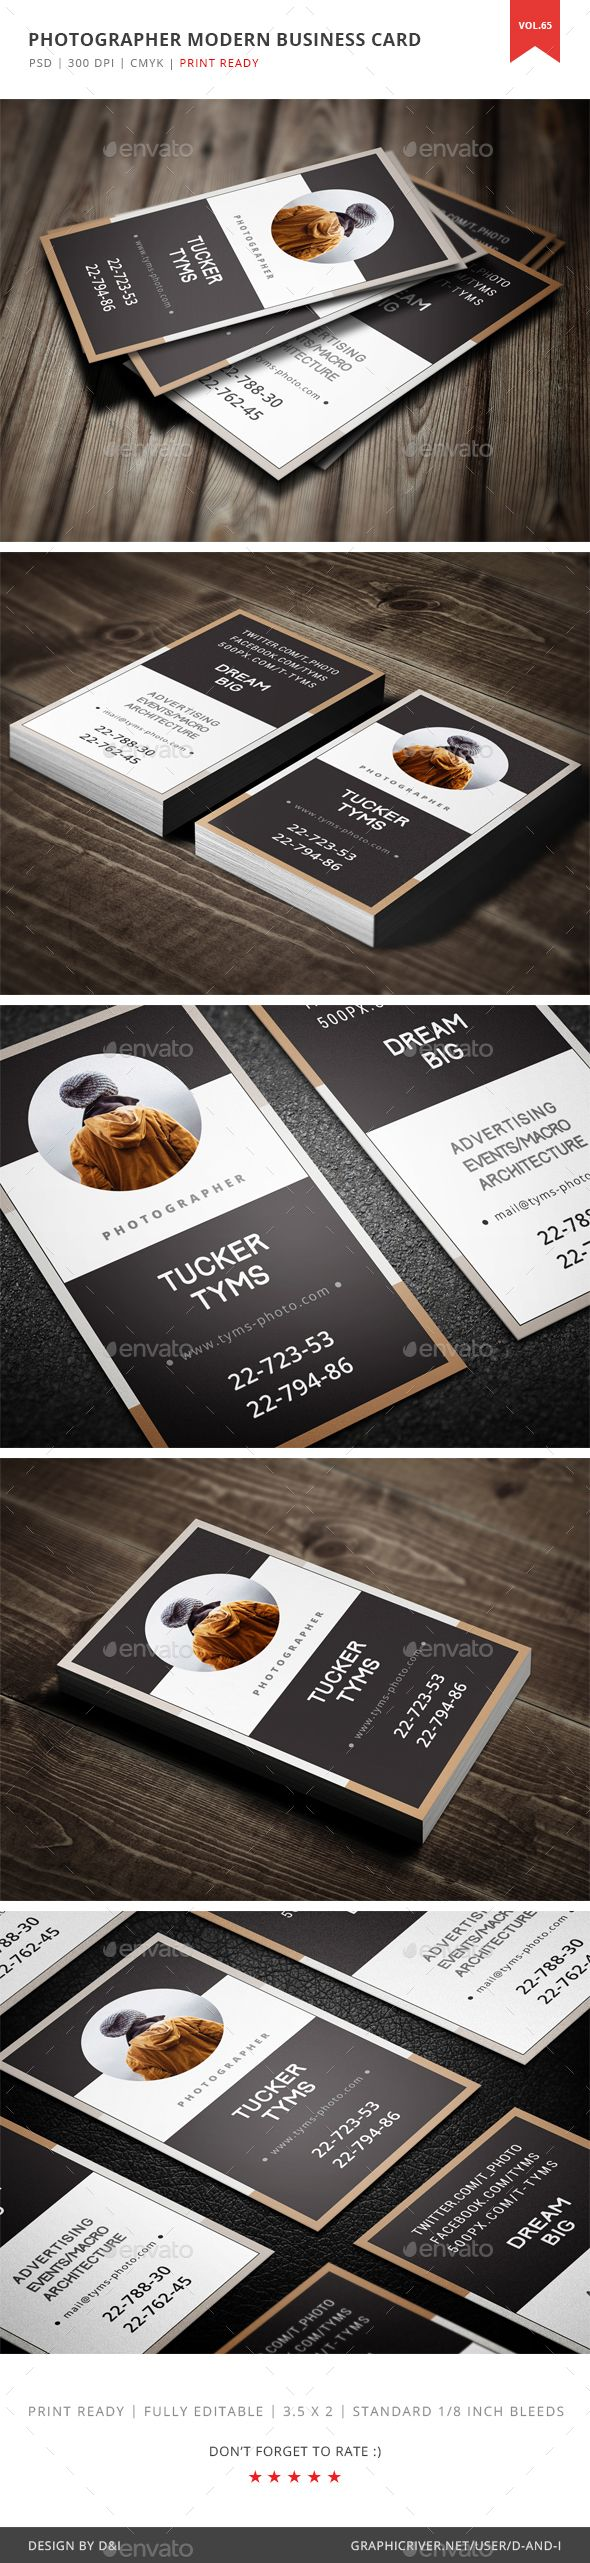 Photographer Modern Business Card Template PSD. Download here…